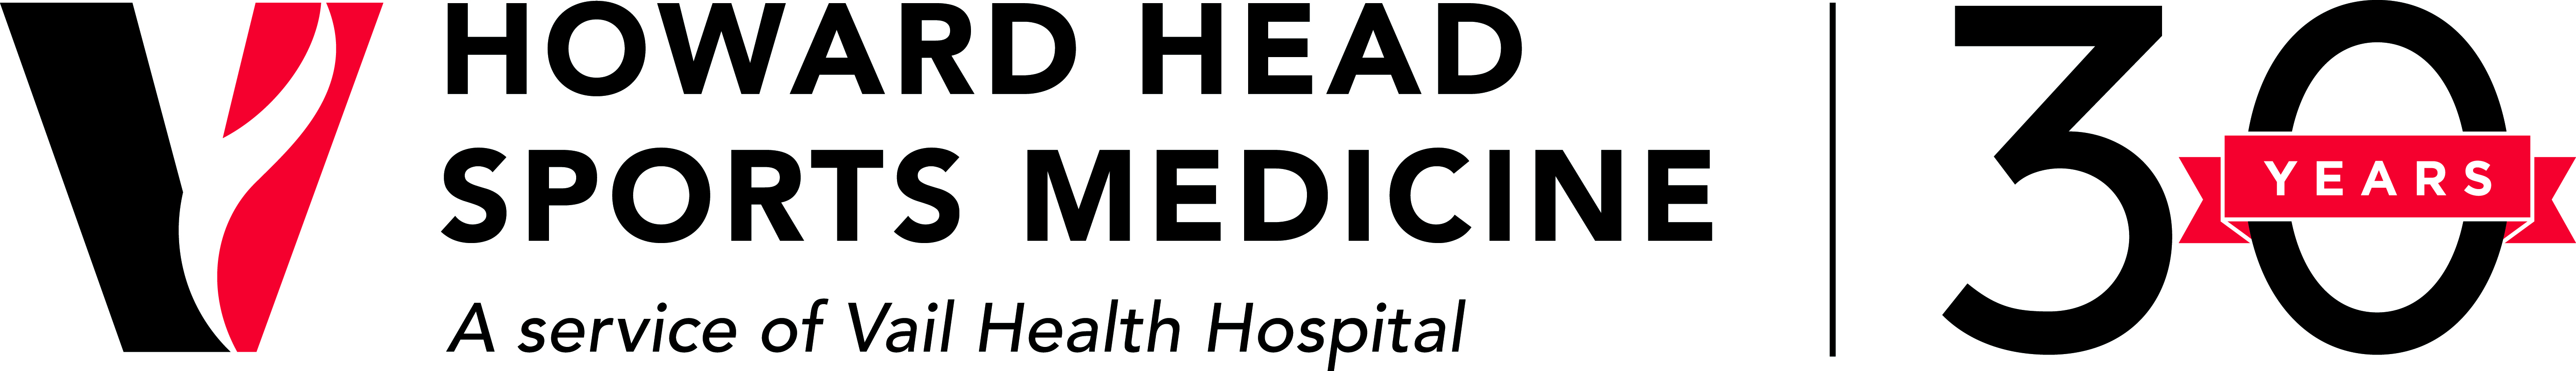 Howard Head Sports Medicine